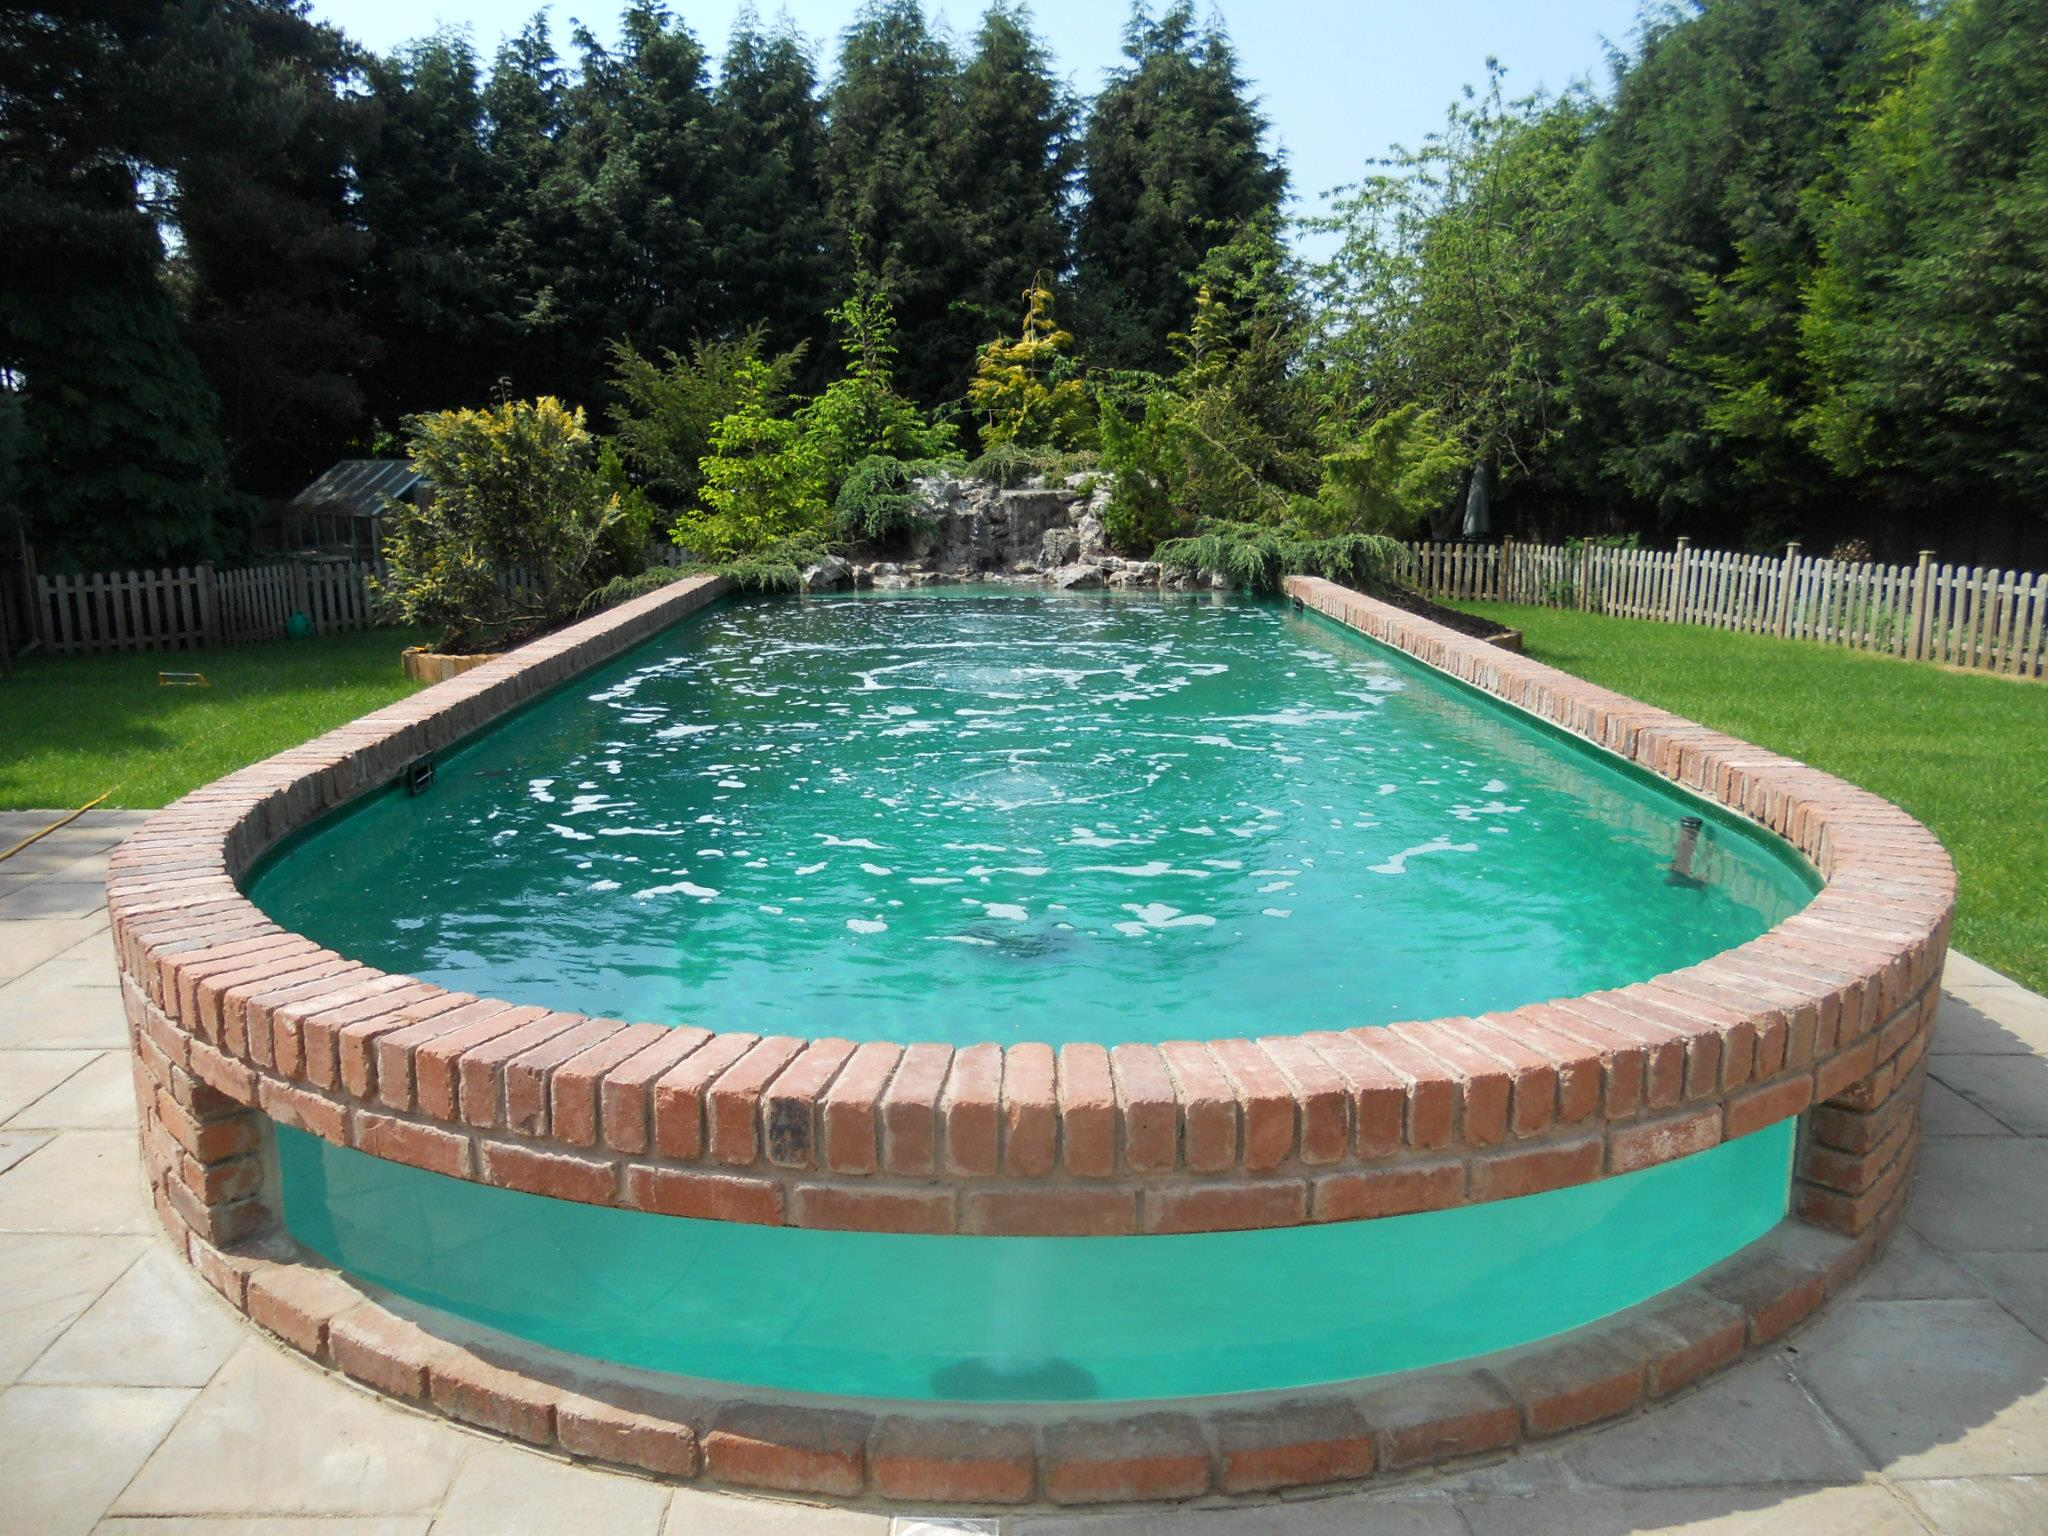 Above Ground Pool - 5 Reasons to Consider Owning One - Dig This Design